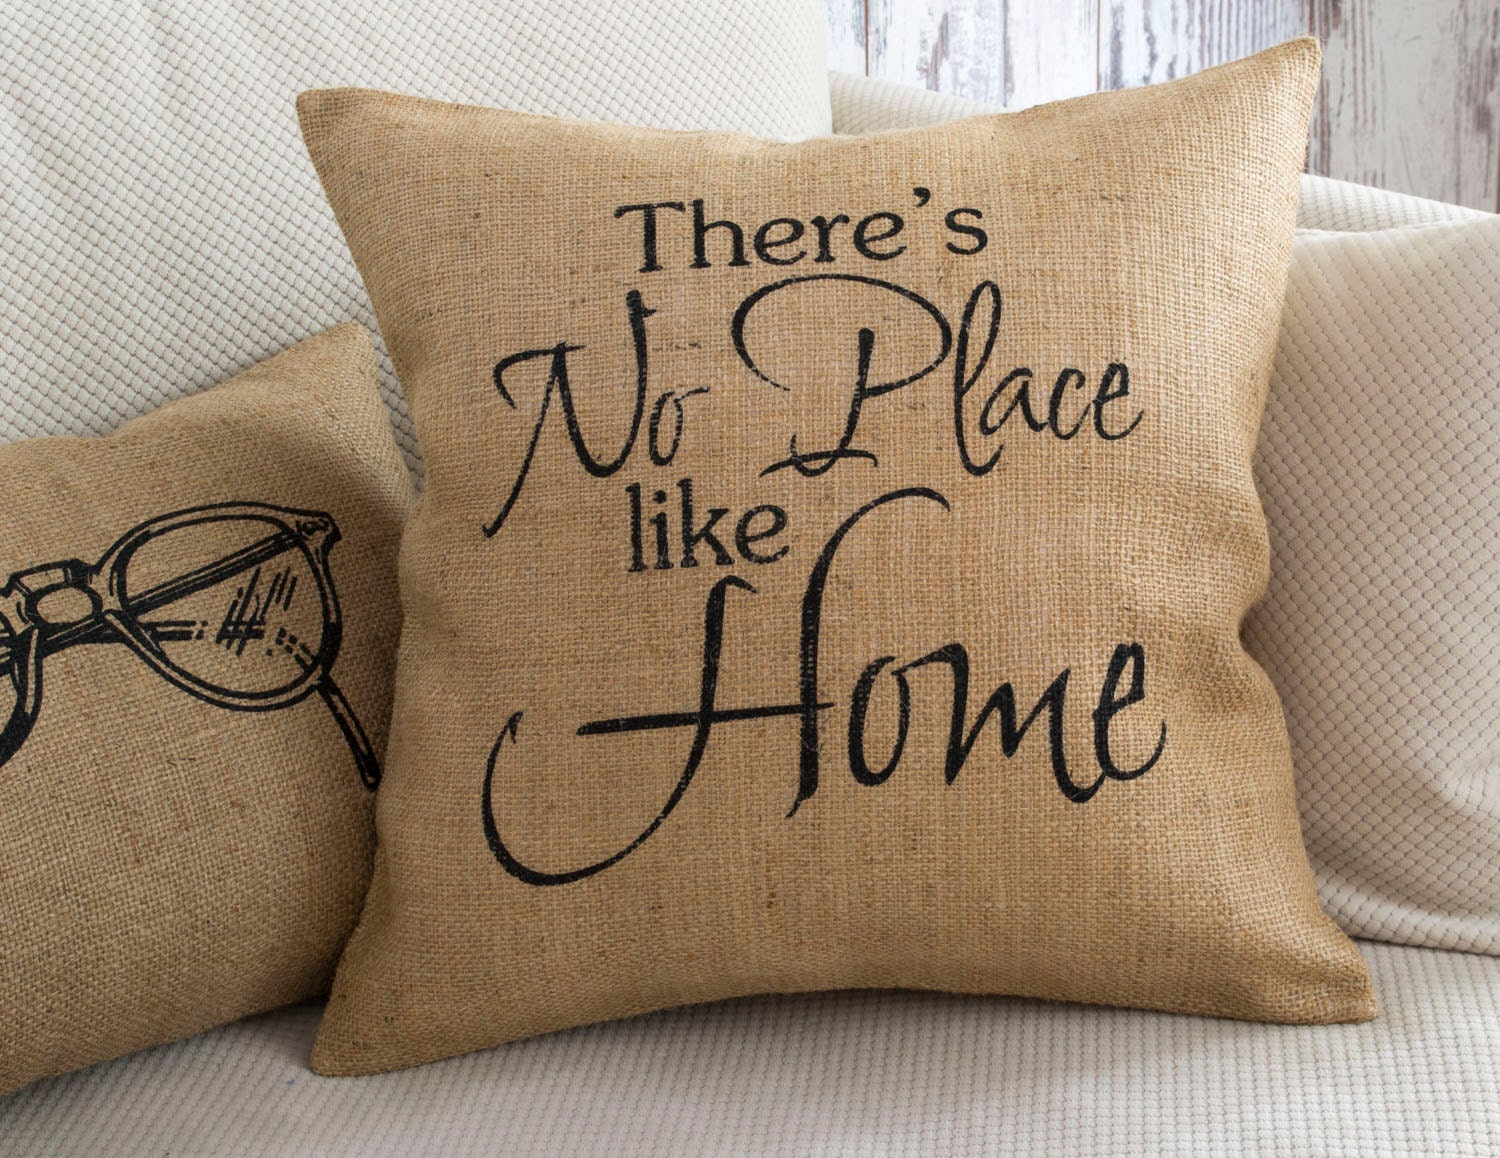 Decorative Pillows - a Perfect Touch To Interior Design: Pillows with text on them